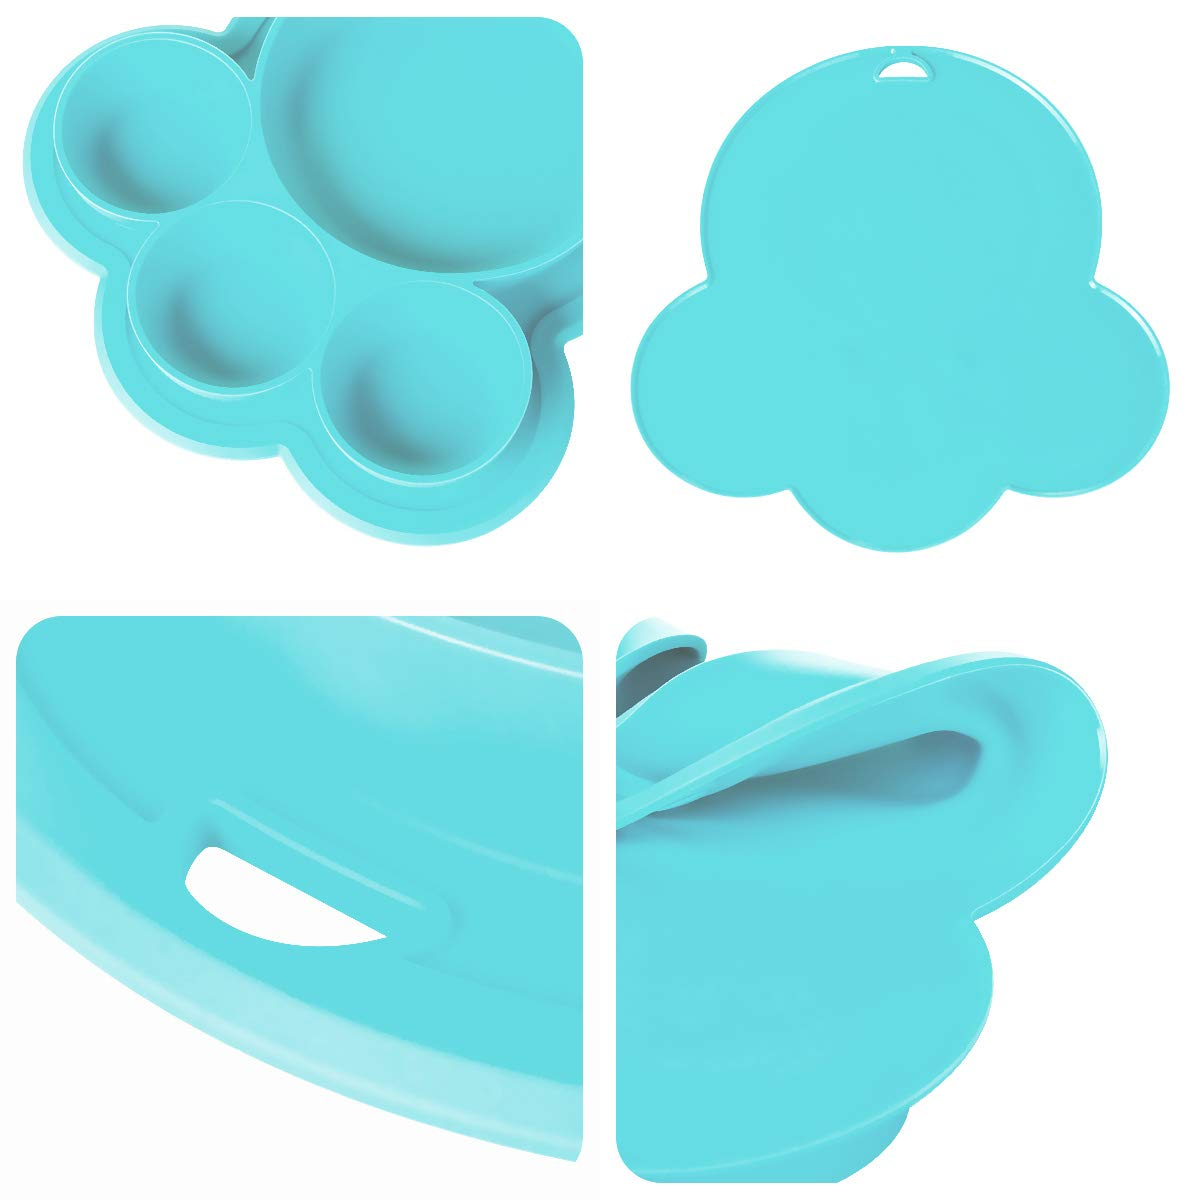 Silicone Baby Toddler Divided Plate BPA Free Microwave Dishwasher Safe